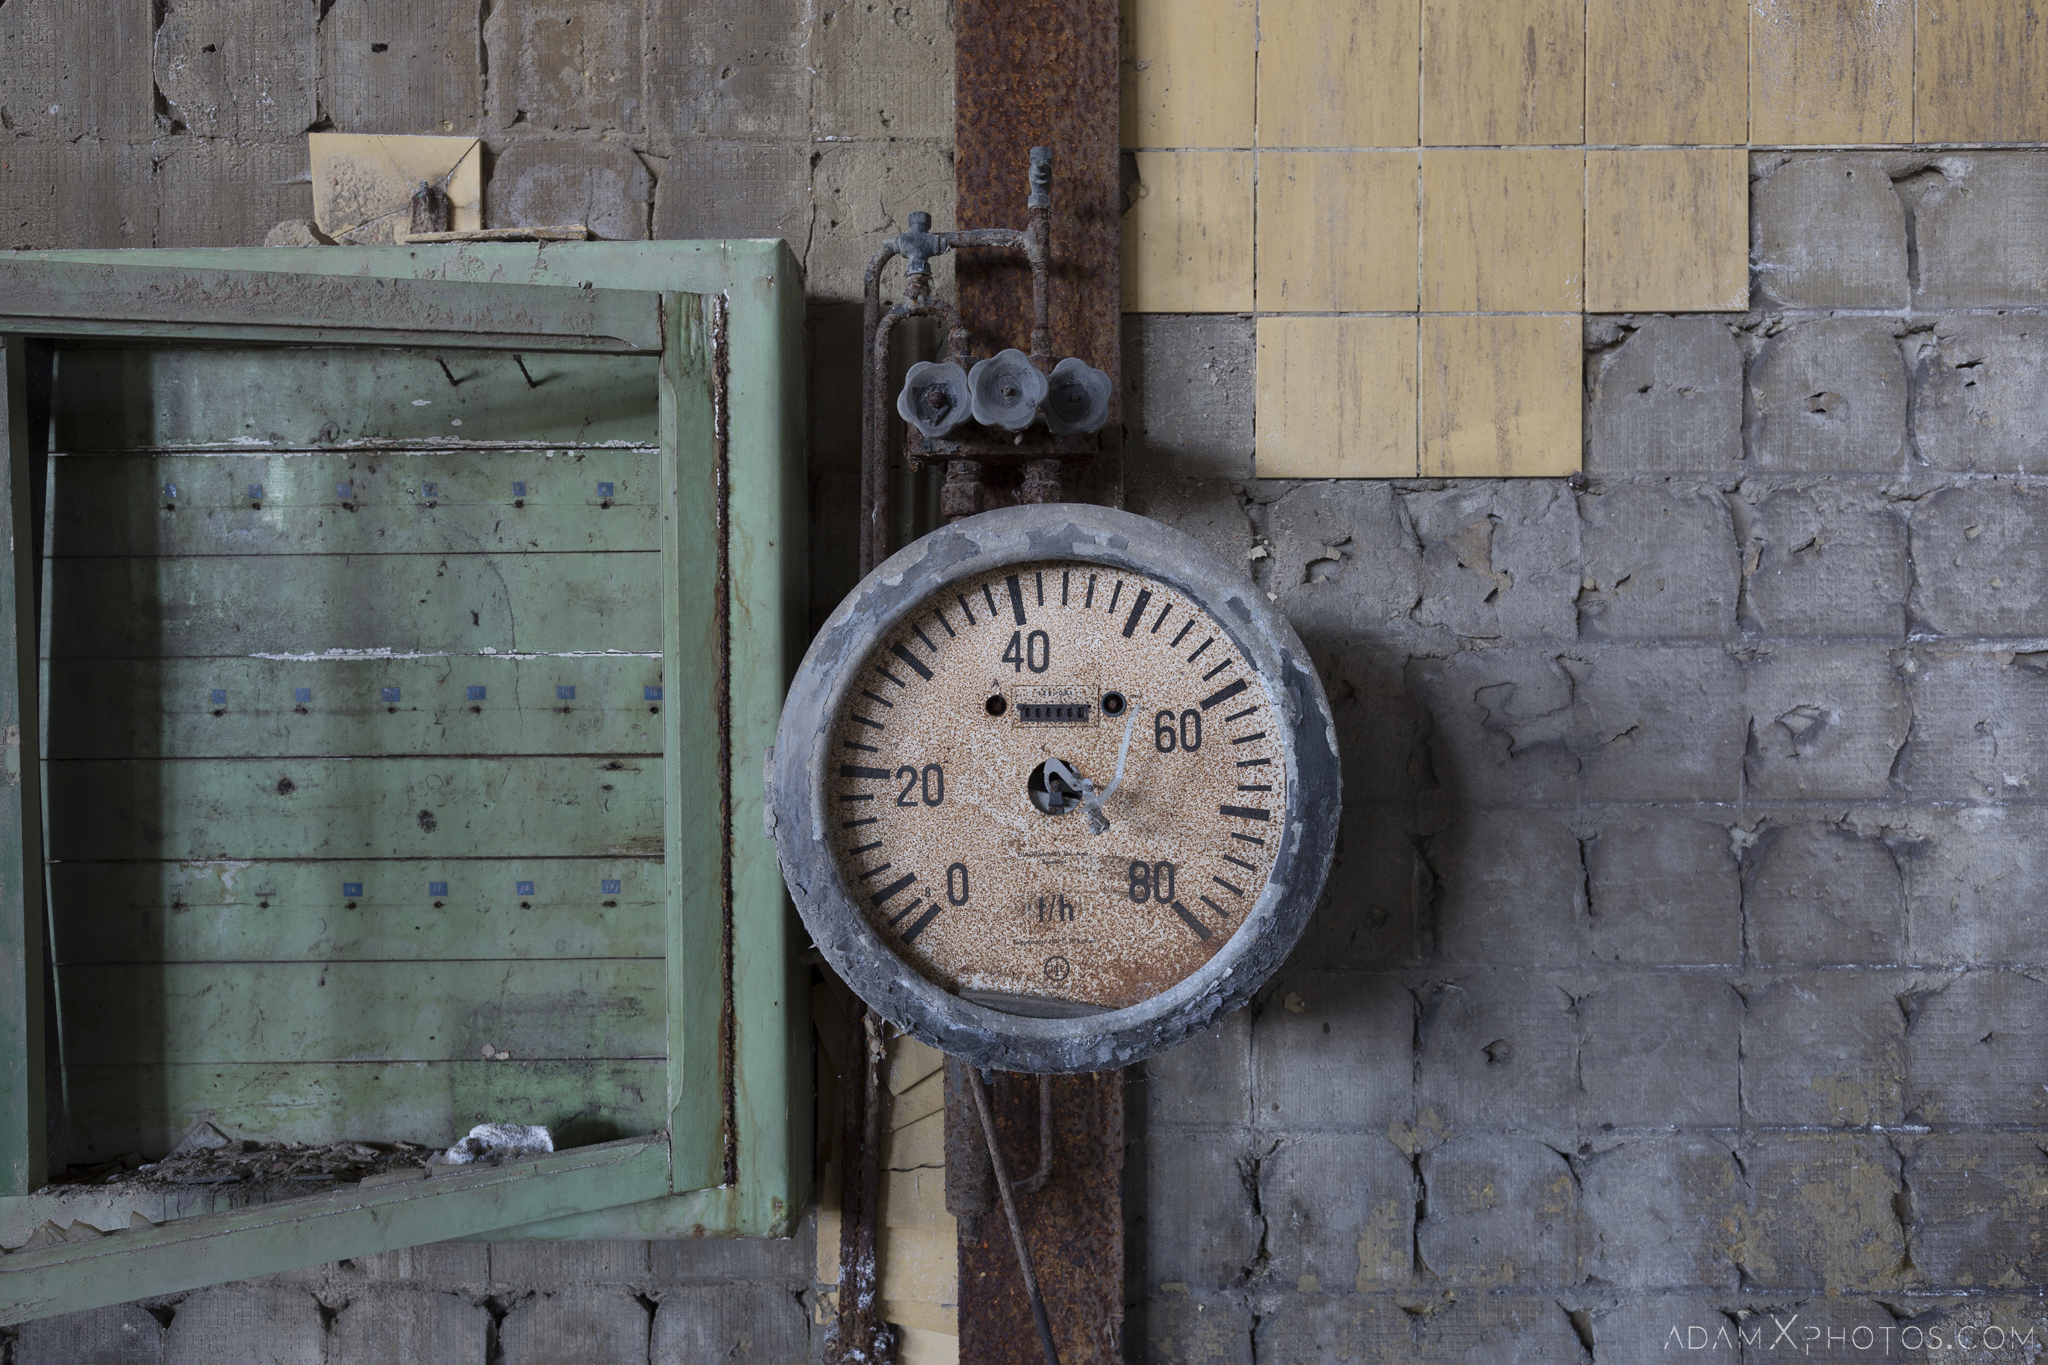 Pressure gauge HF4 power plant wet dogs AMEC Industrial Industry Adam X Urban Exploration Belgium Access 2017 Abandoned decay lost forgotten derelict location creepy haunting eerie